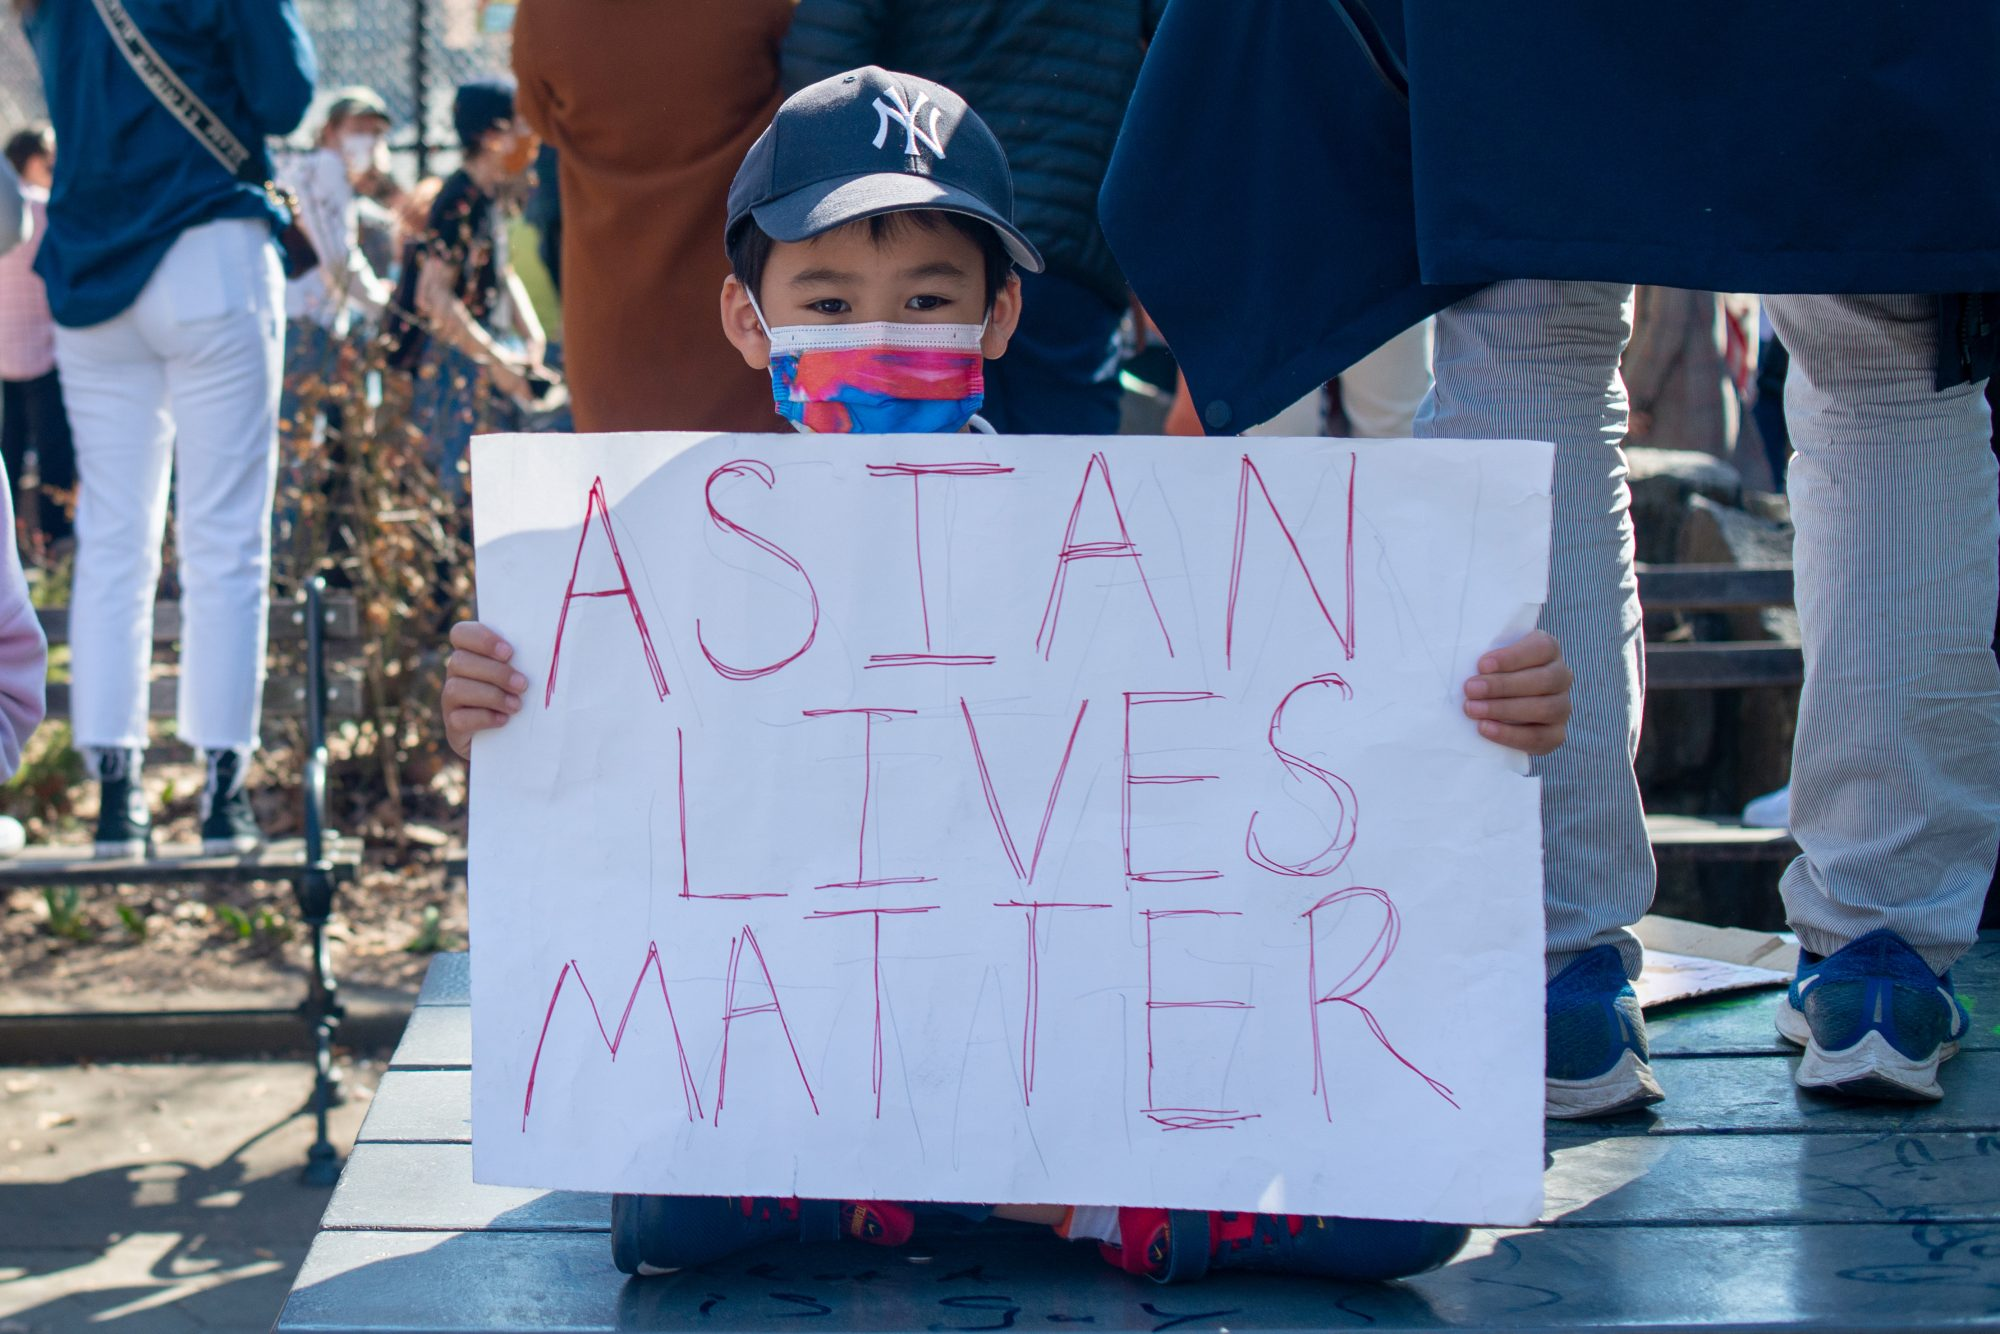 An image of a little boy holding an Asian Lives Matter sign at a protest.